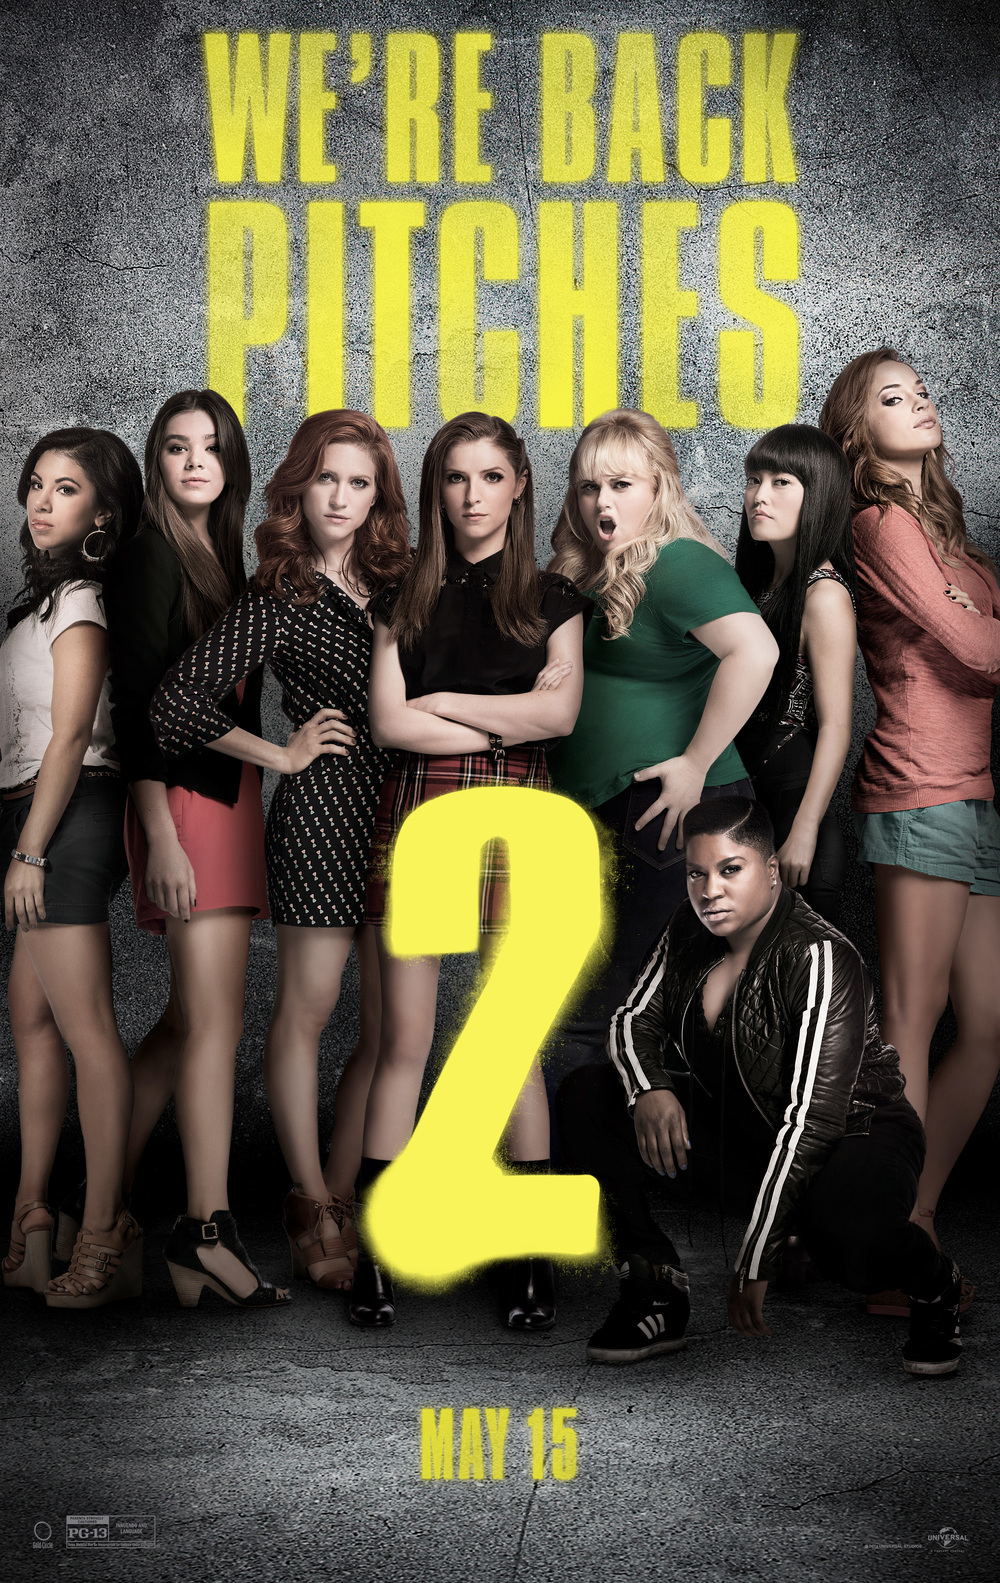 pitch-perfect-2-movie-poster-2-01-3158×5000.jpg